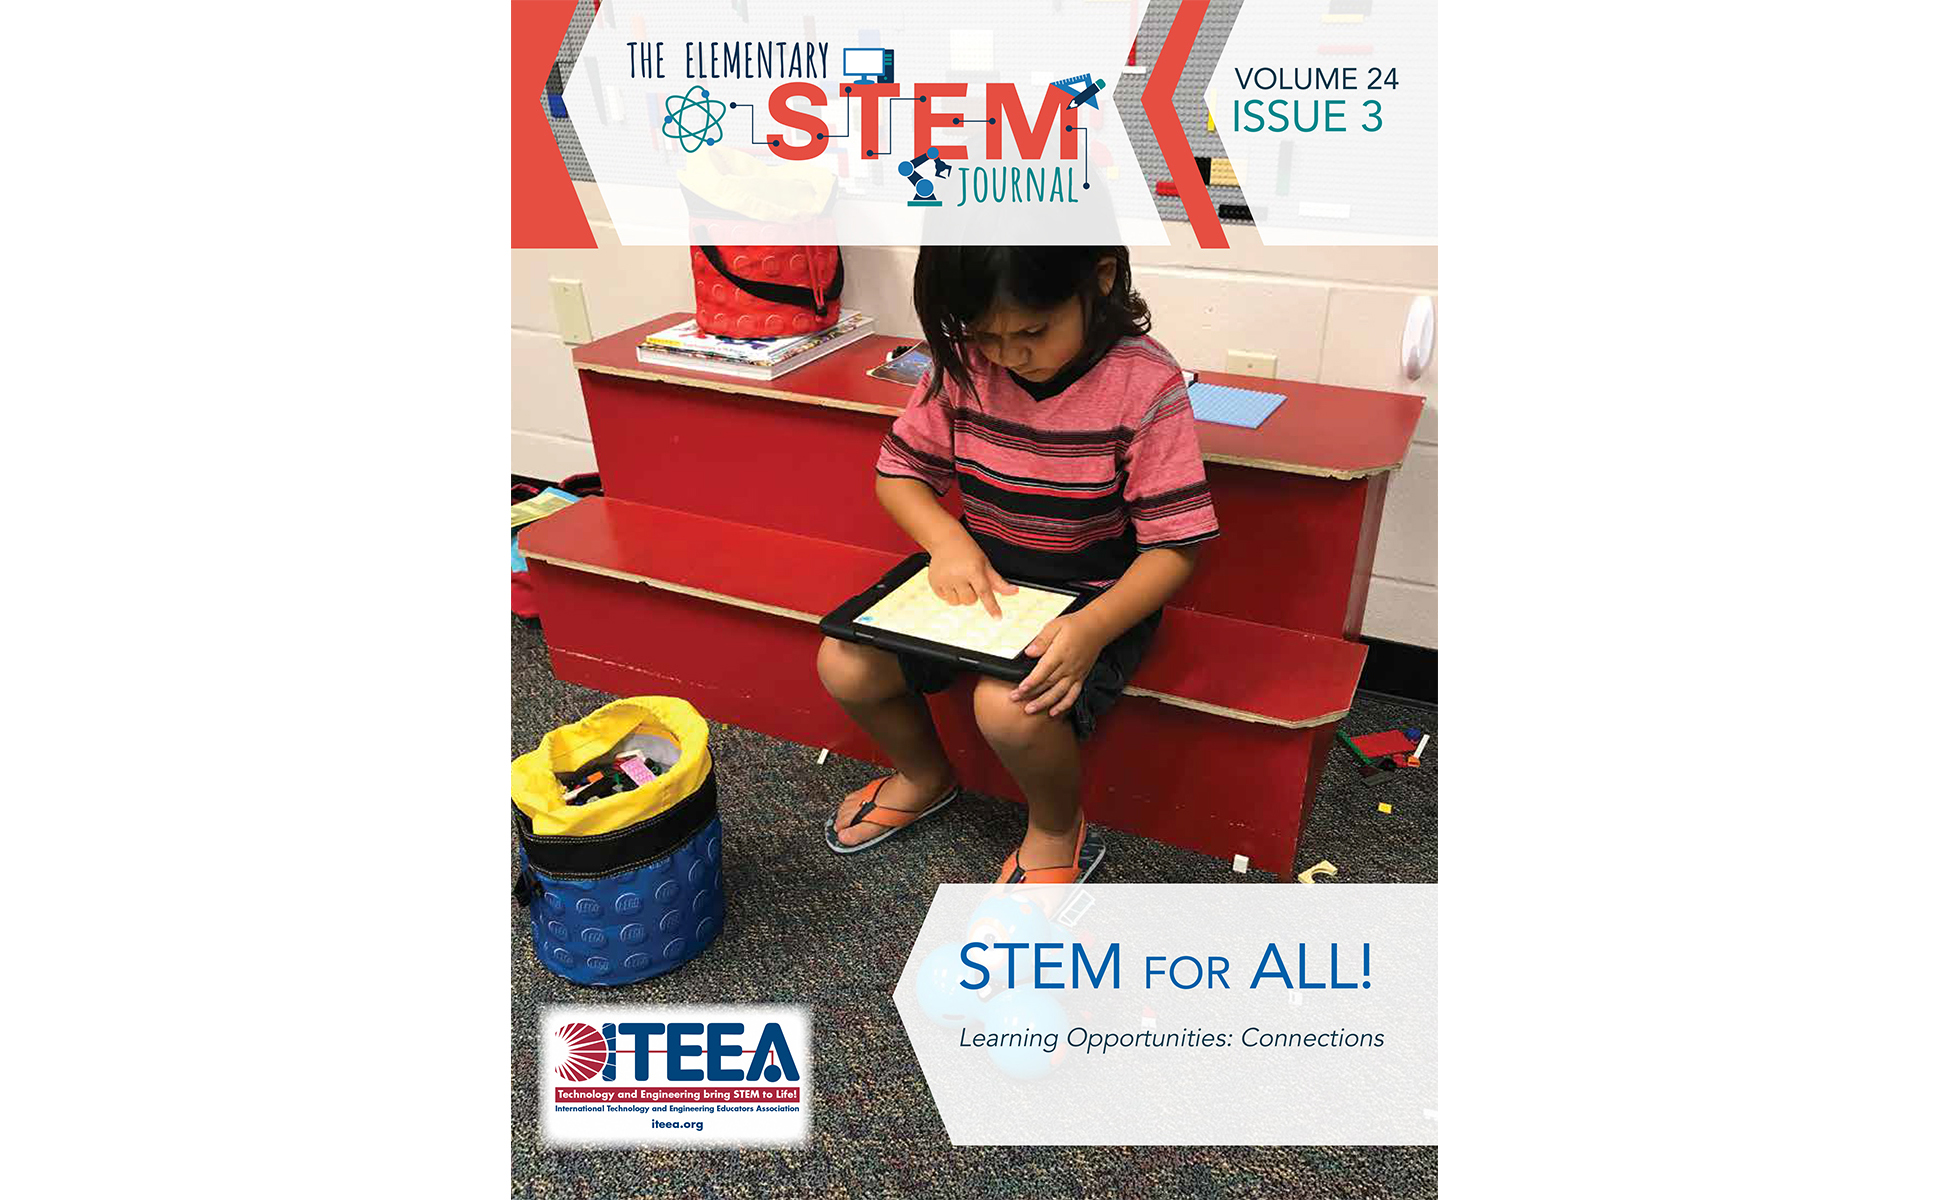 Find Out What's Inside the March 2020 Issue of The Elementary STEM Journal